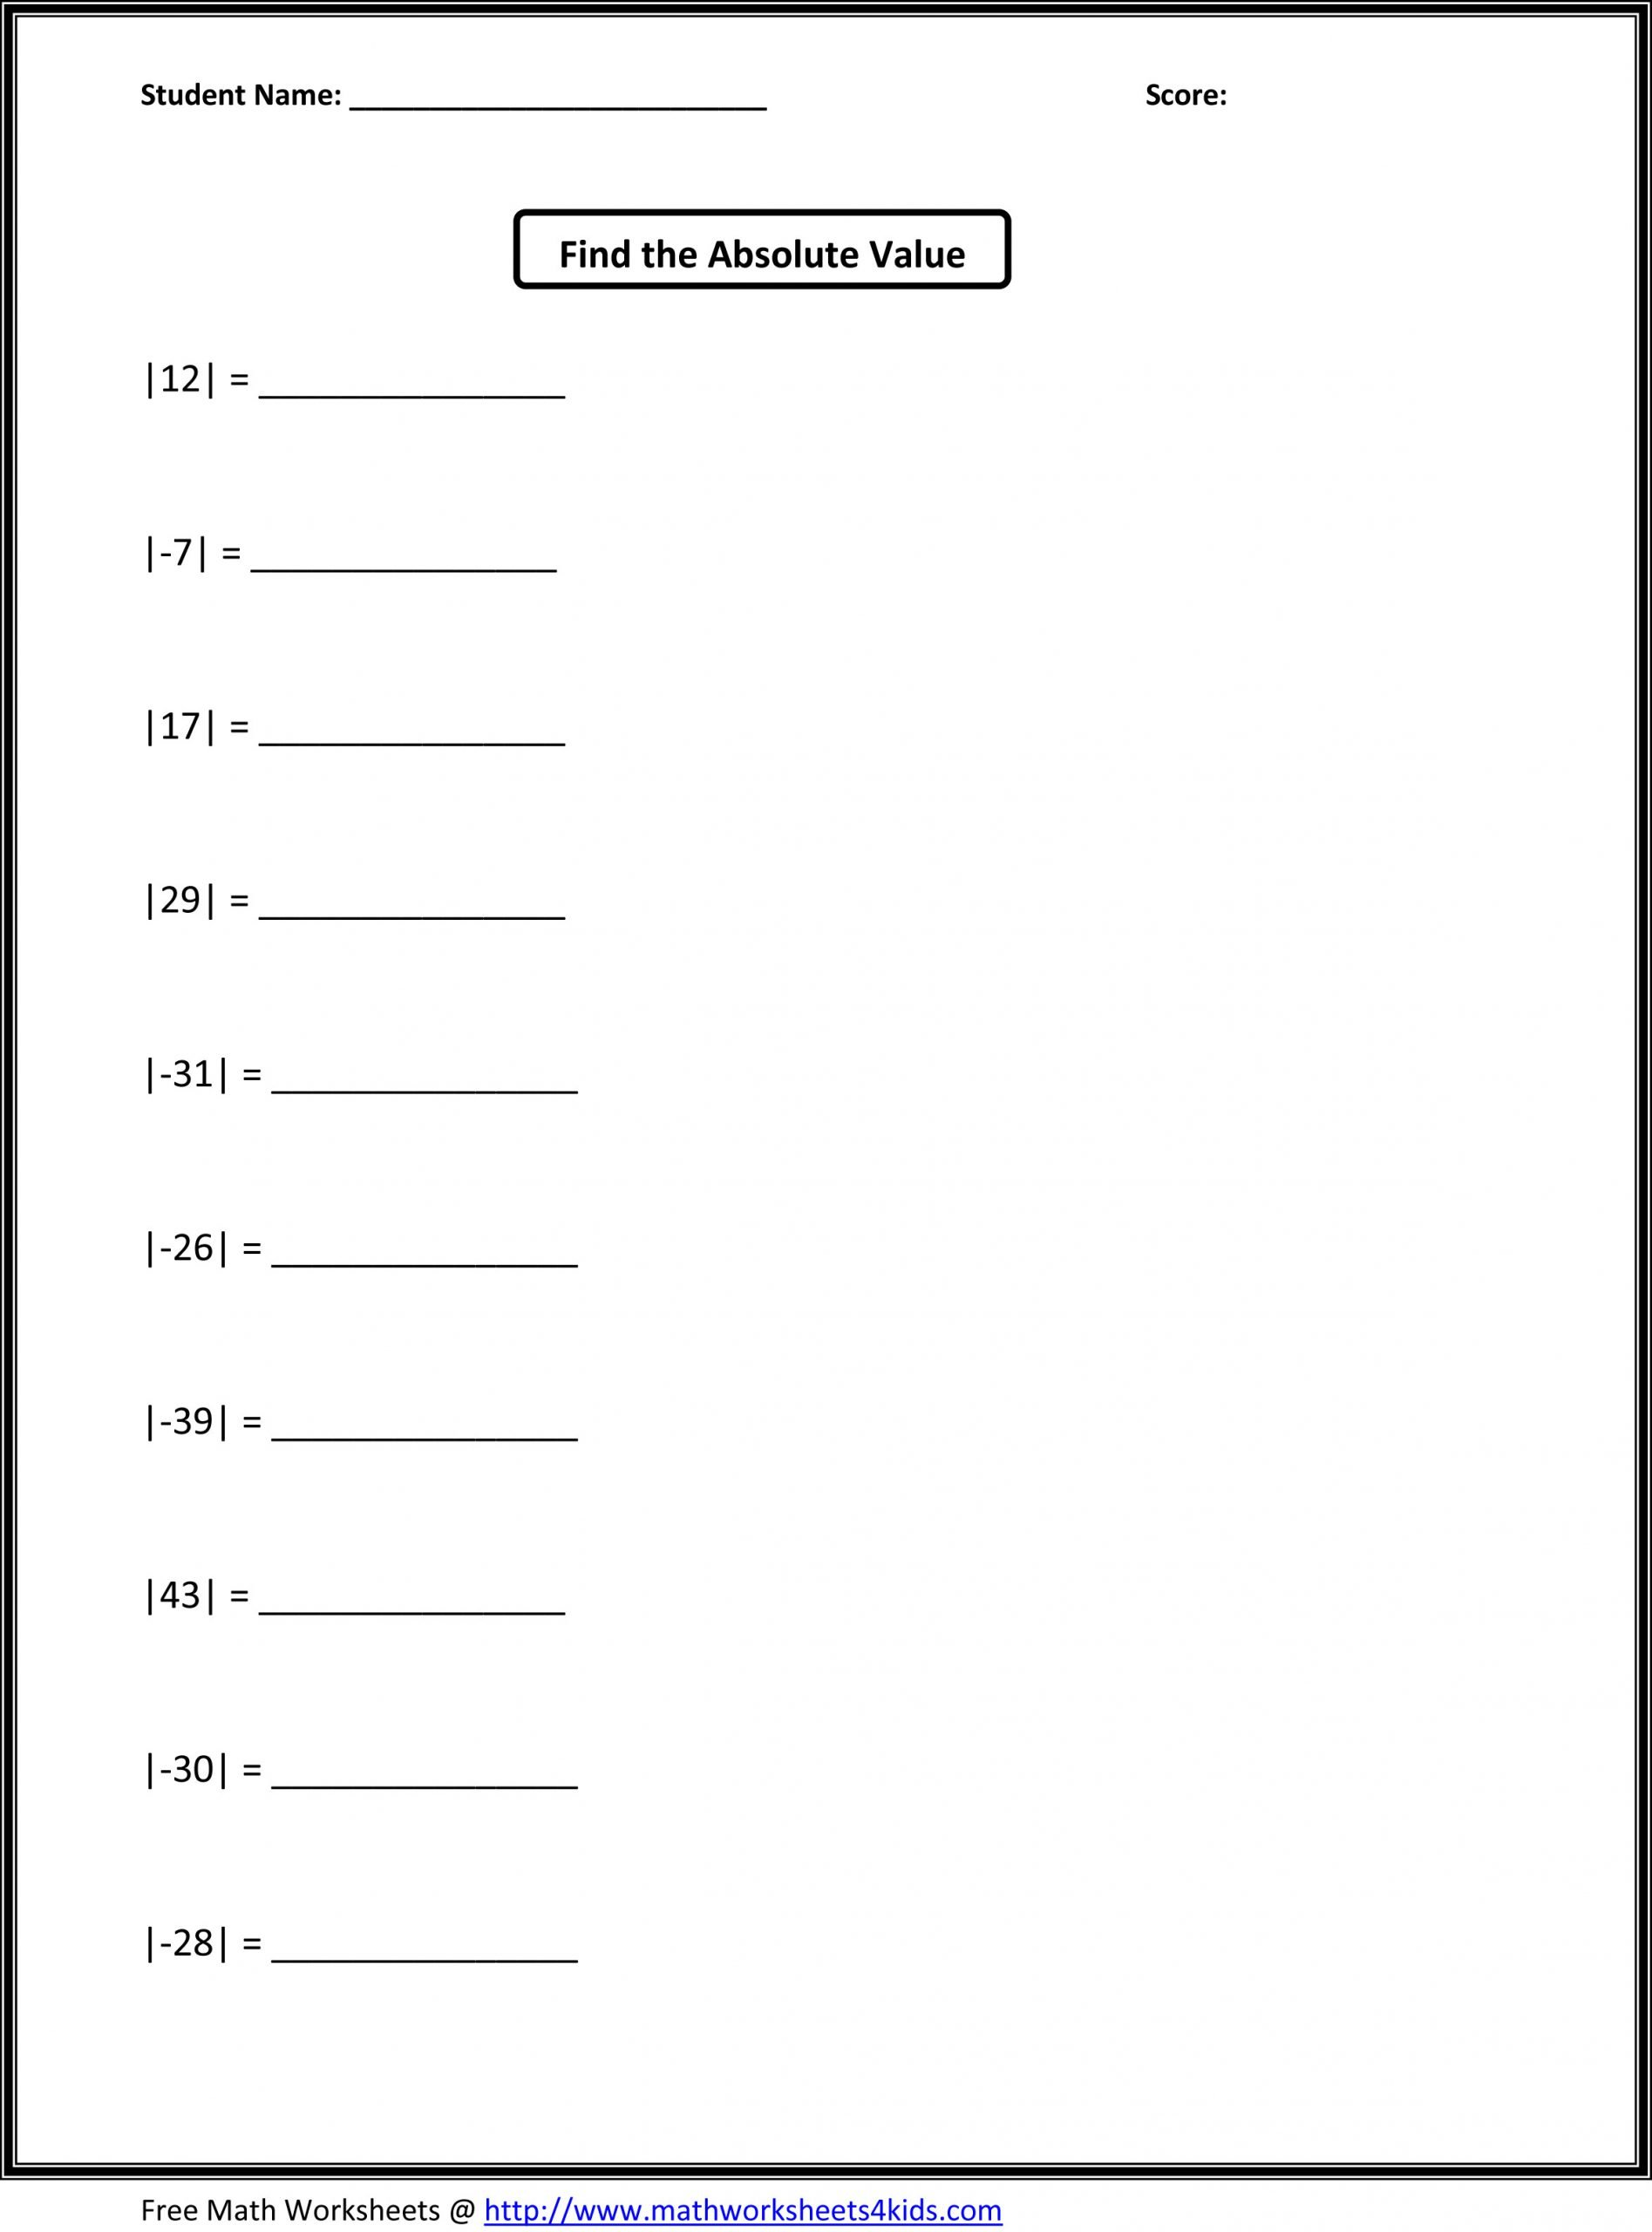 Line Graph Worksheet 5th Grade Absolute Value Math Practice Worksheet